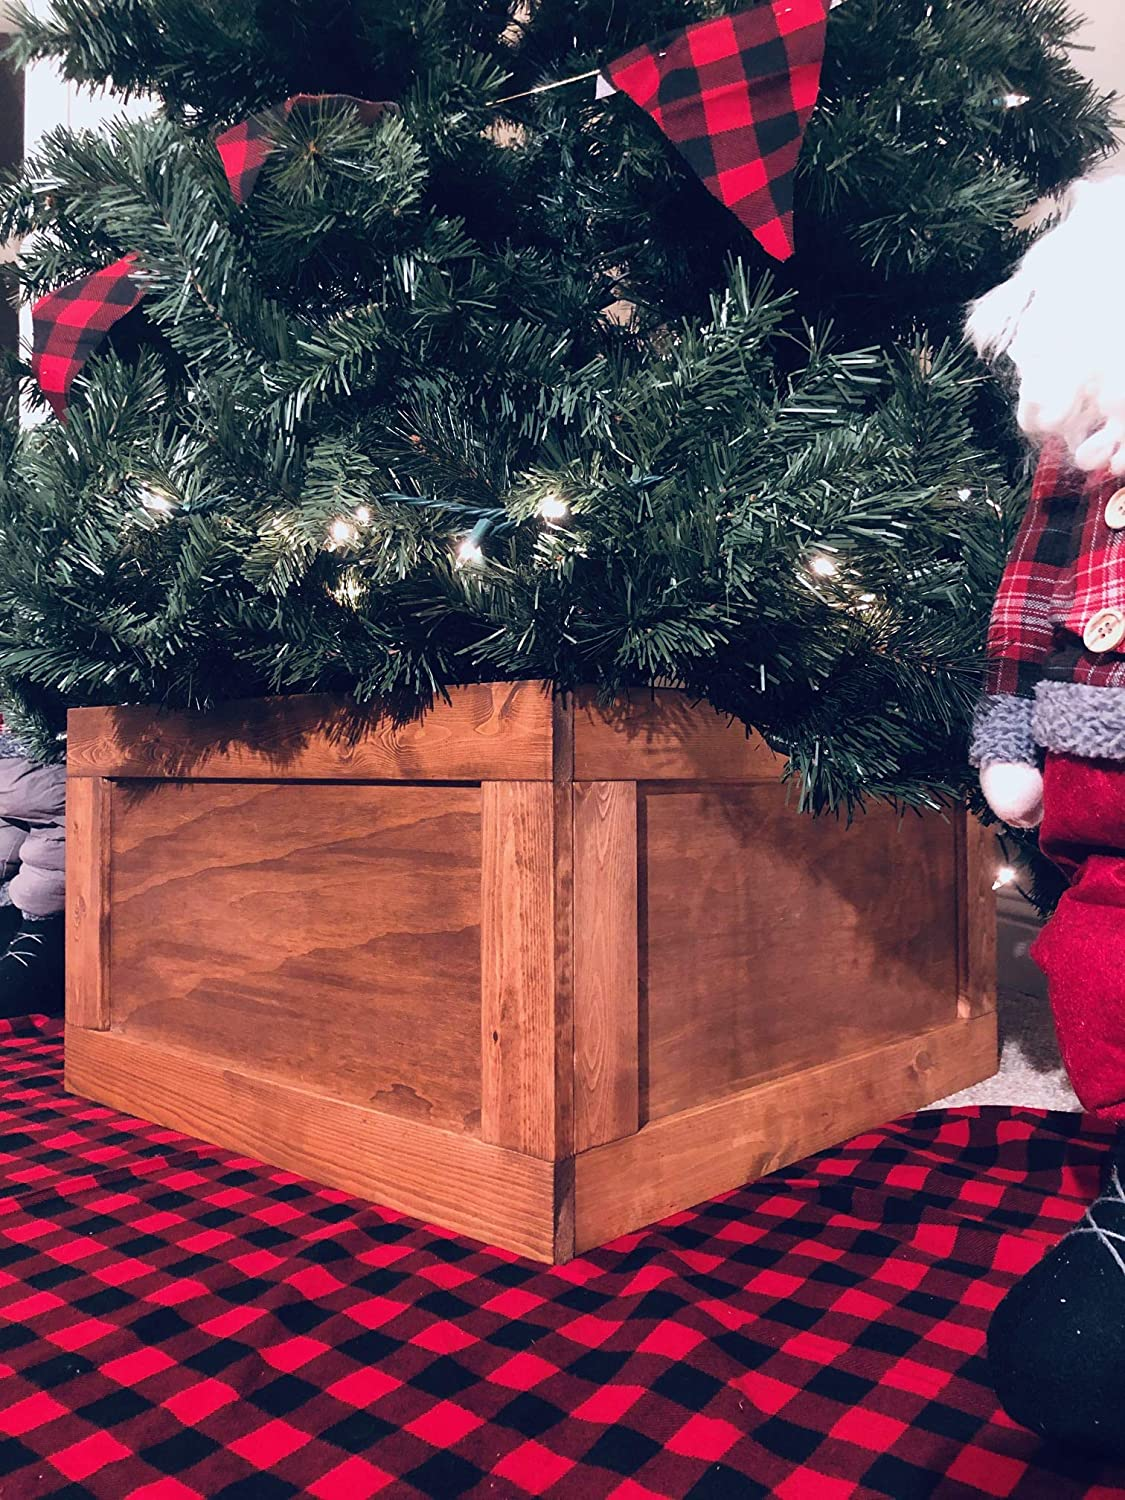 Finn Co Home Rustic Wood Christmas Tree Box Collar Christmas Tree Skirt Alternative Tree Skirt Tree Stand Cover